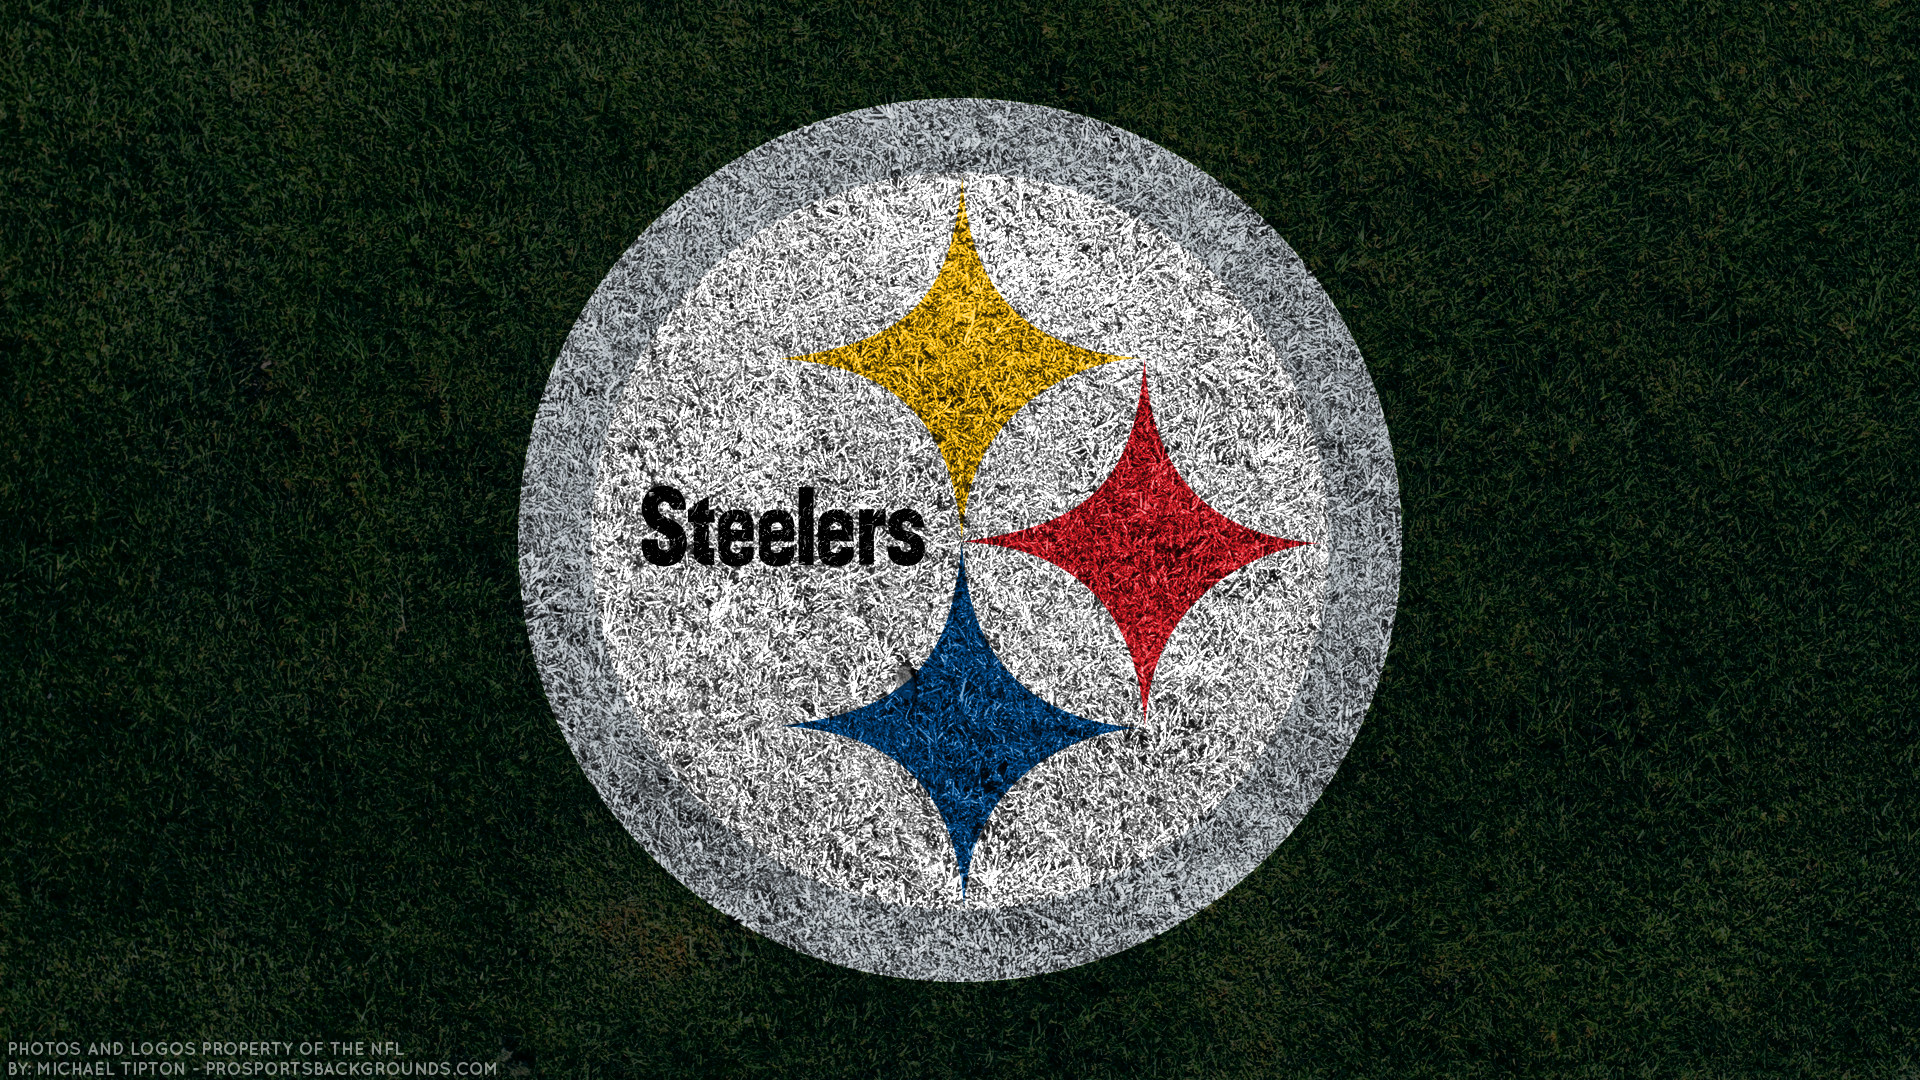 1920x1080 - Steelers Desktop 5